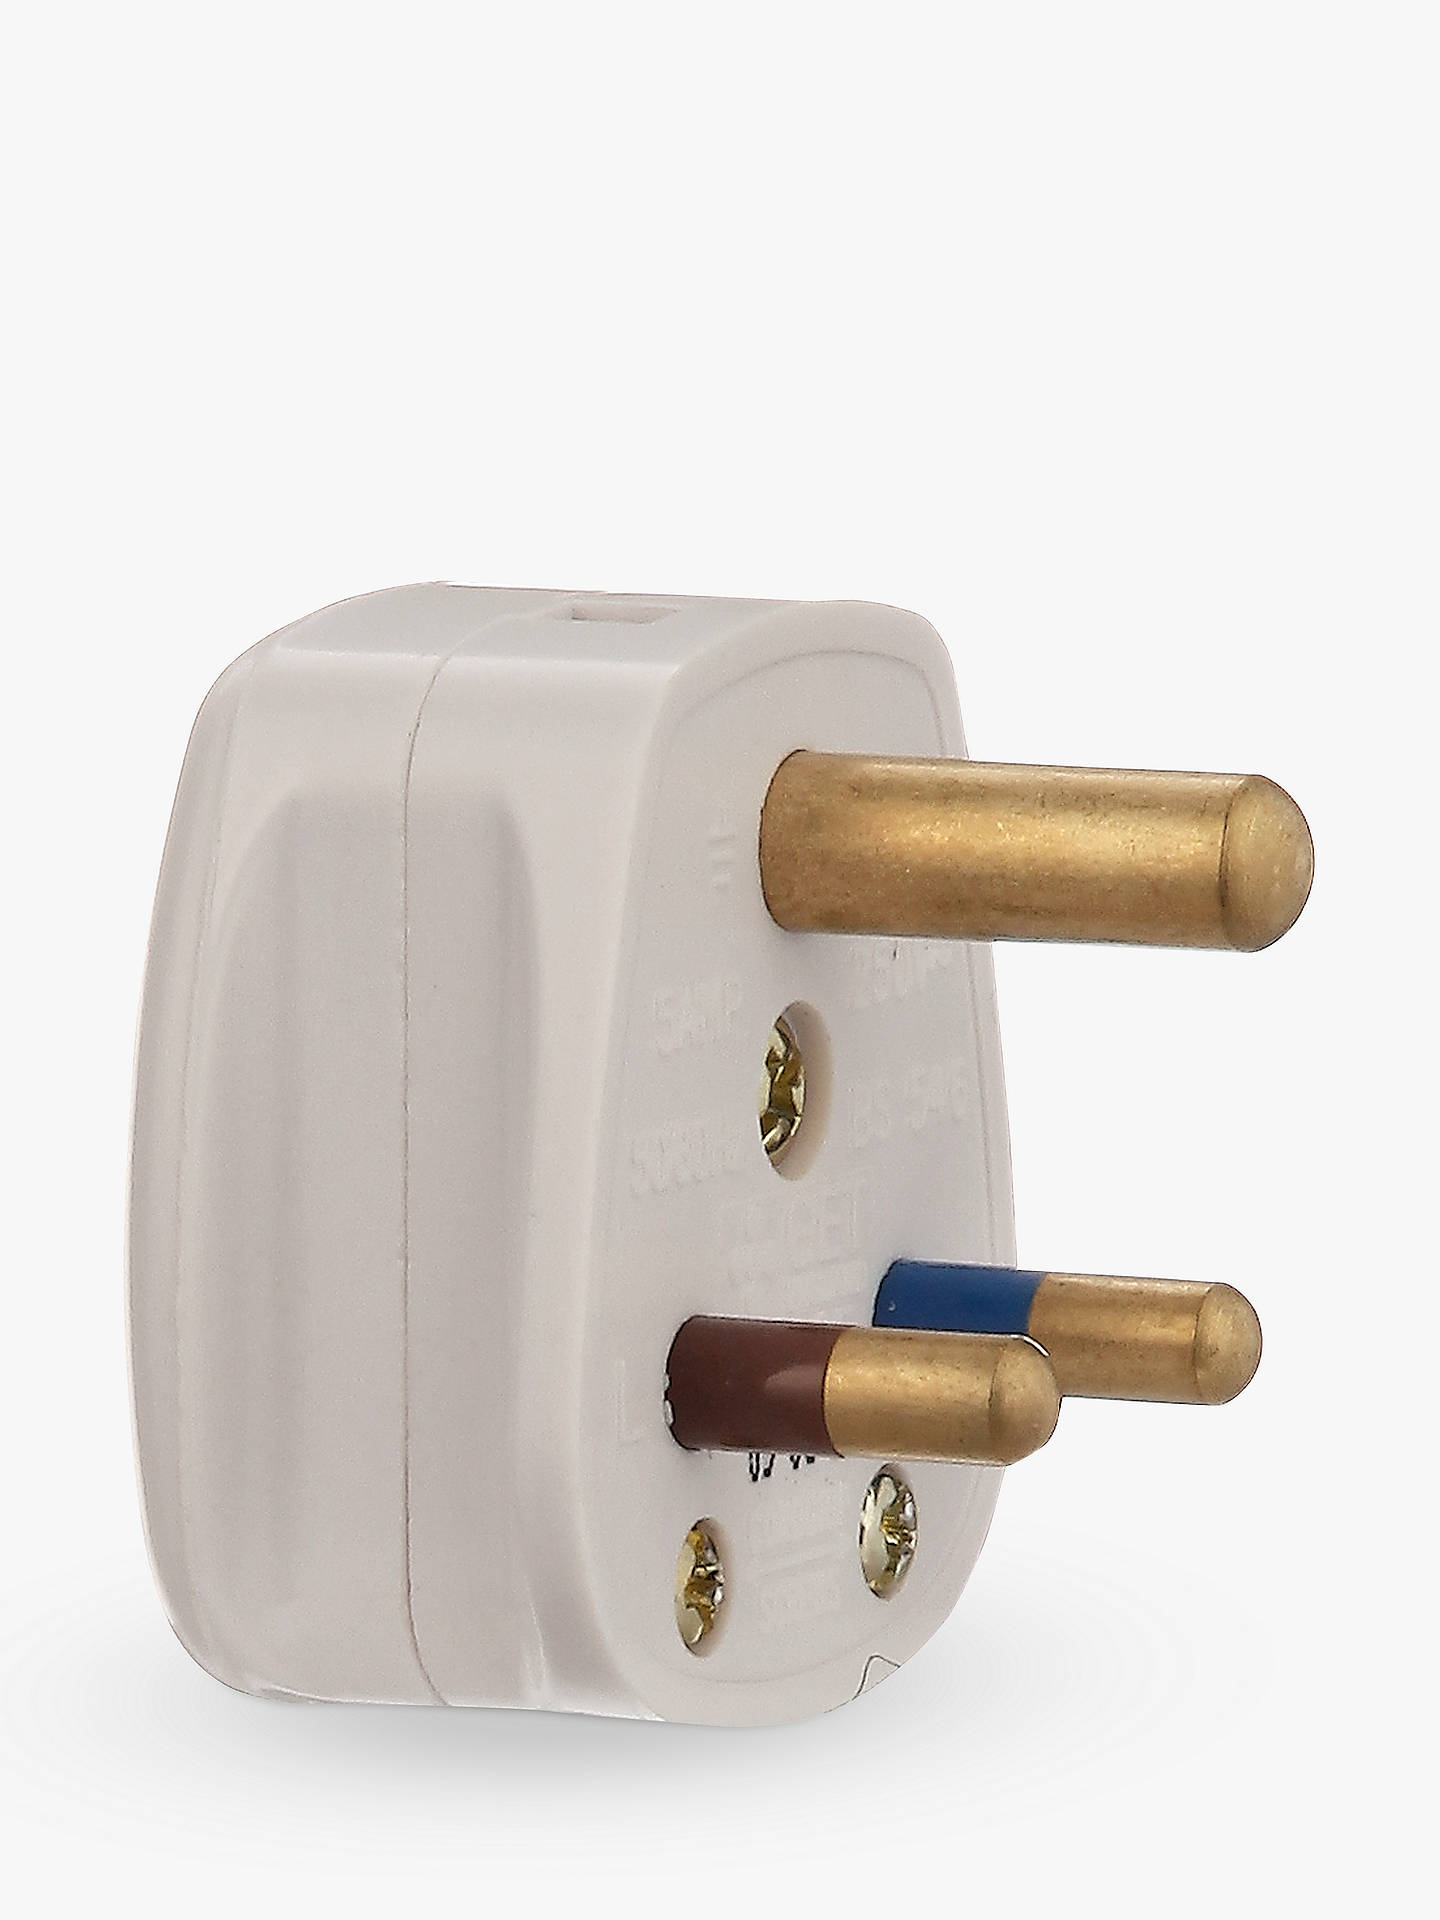 Buy John Lewis & Partners 3 Round Pin Plug, 5 Amp Online at johnlewis.com